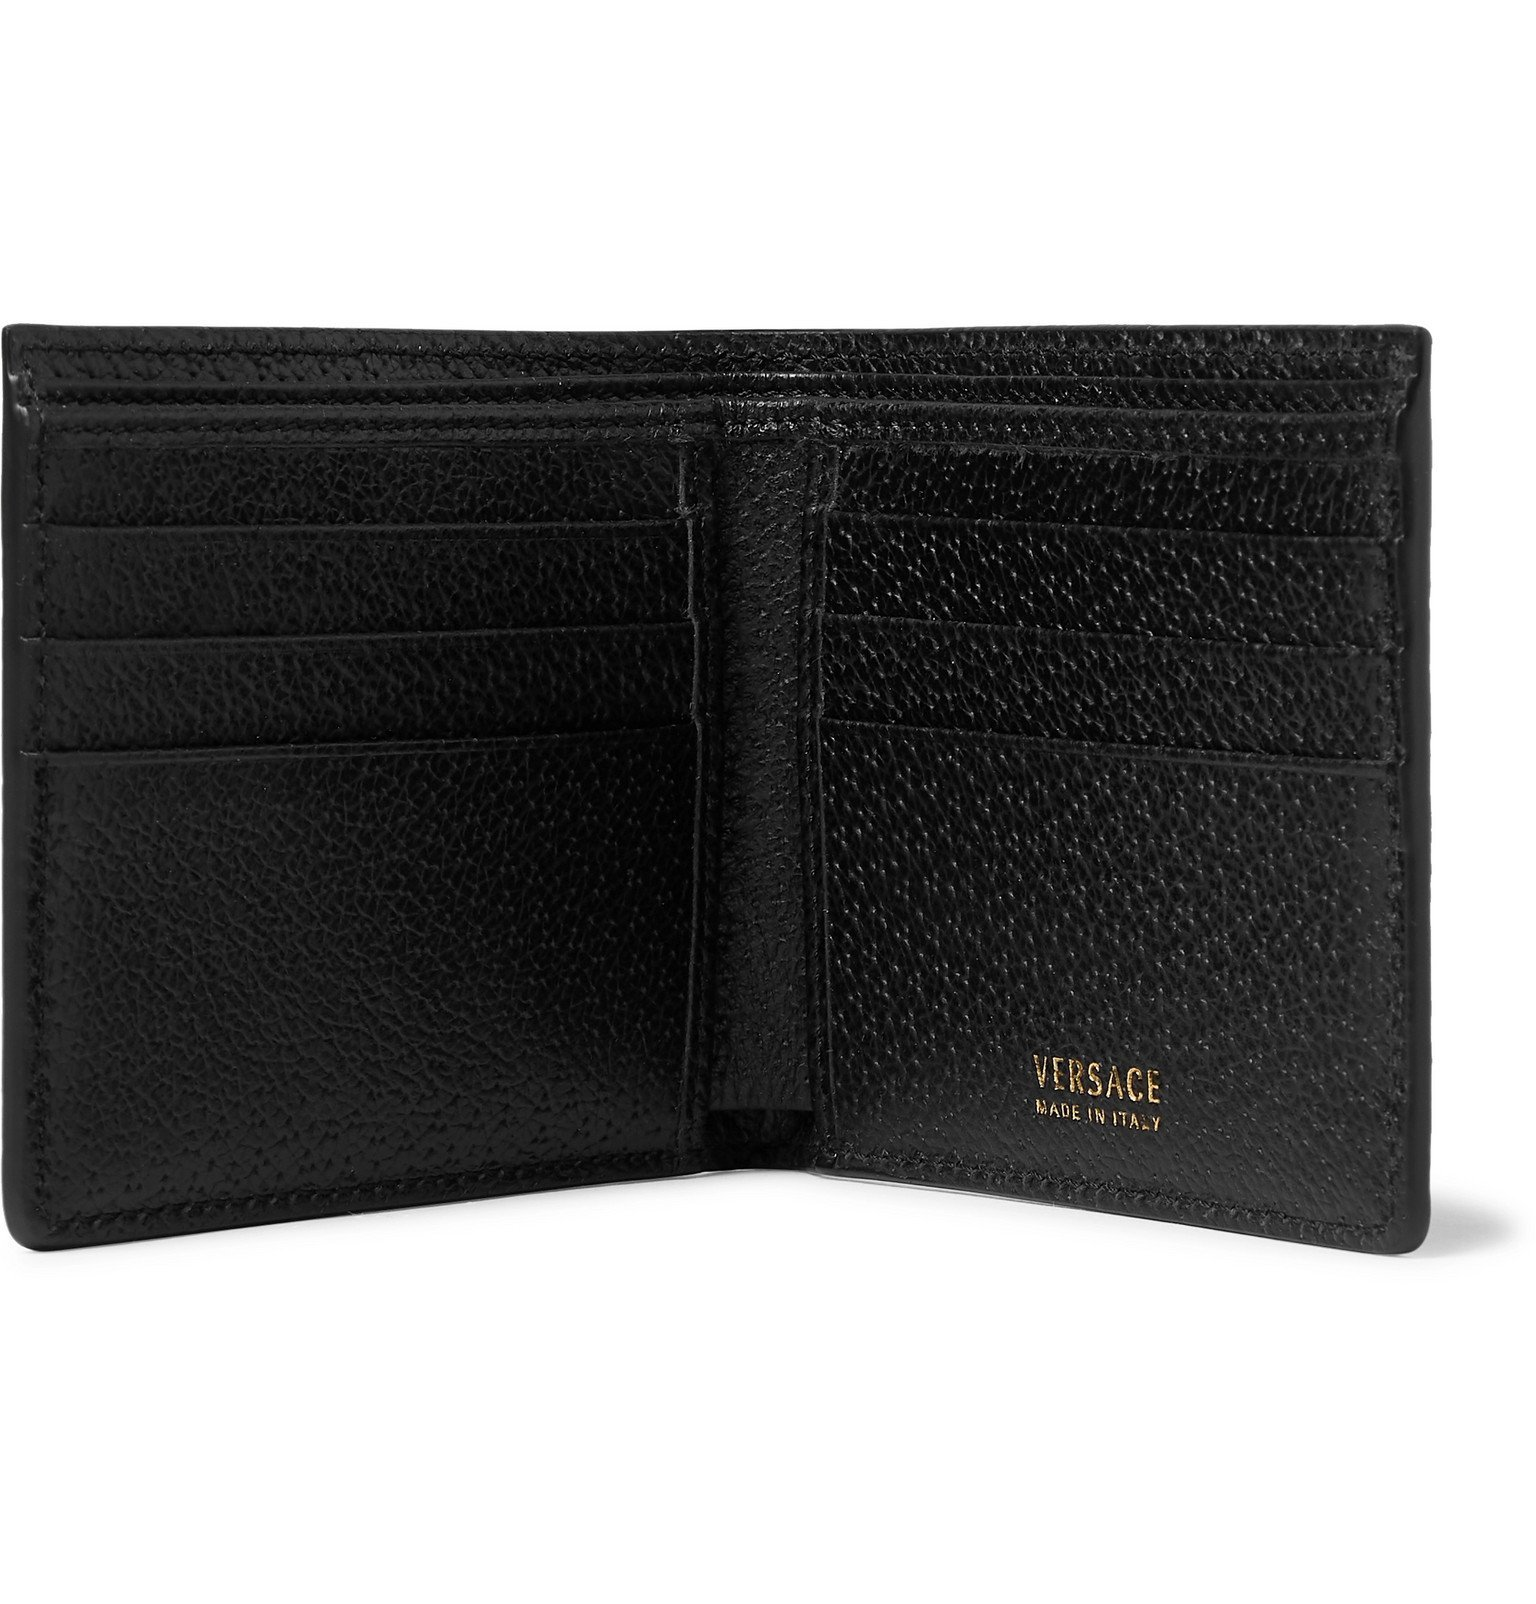 Versace - Embellished Full-Grain Leather Bifold Wallet - Black